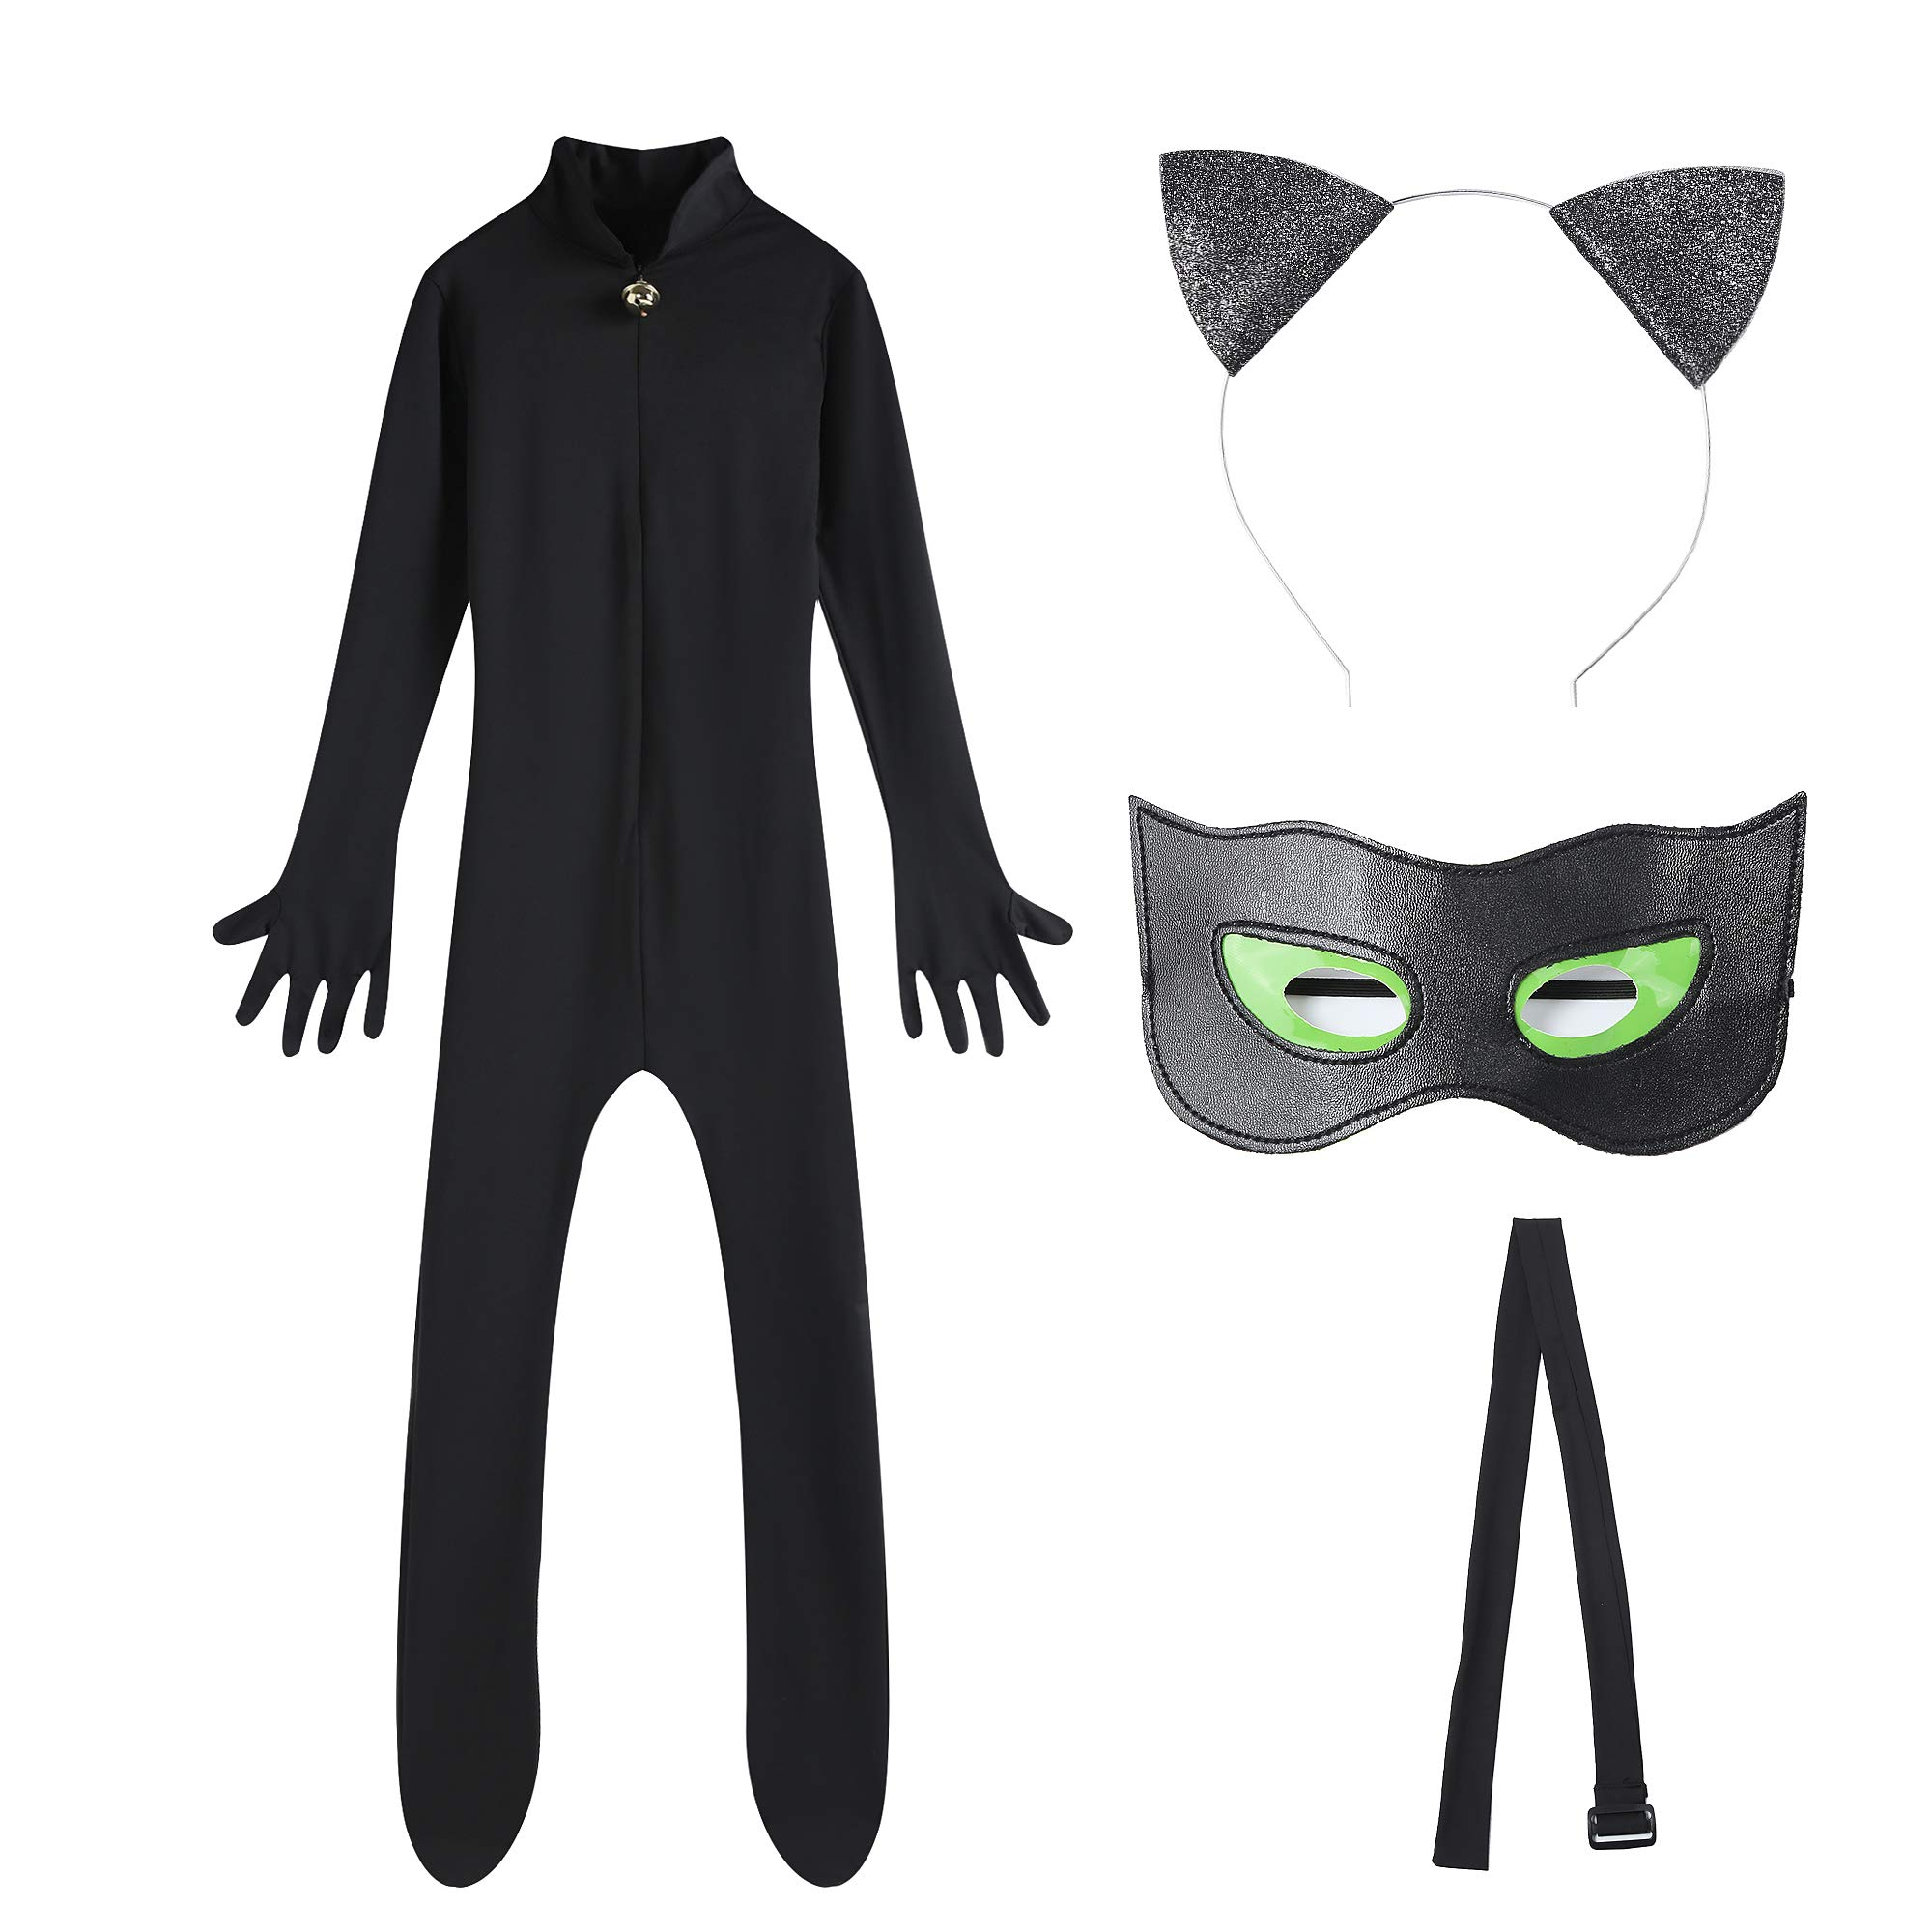 Tomlyws Halloween Party Child Cosplay Kid Costumes Chlid Little Beetle Suit Black Cat Noir Jumpsuit for Christmas